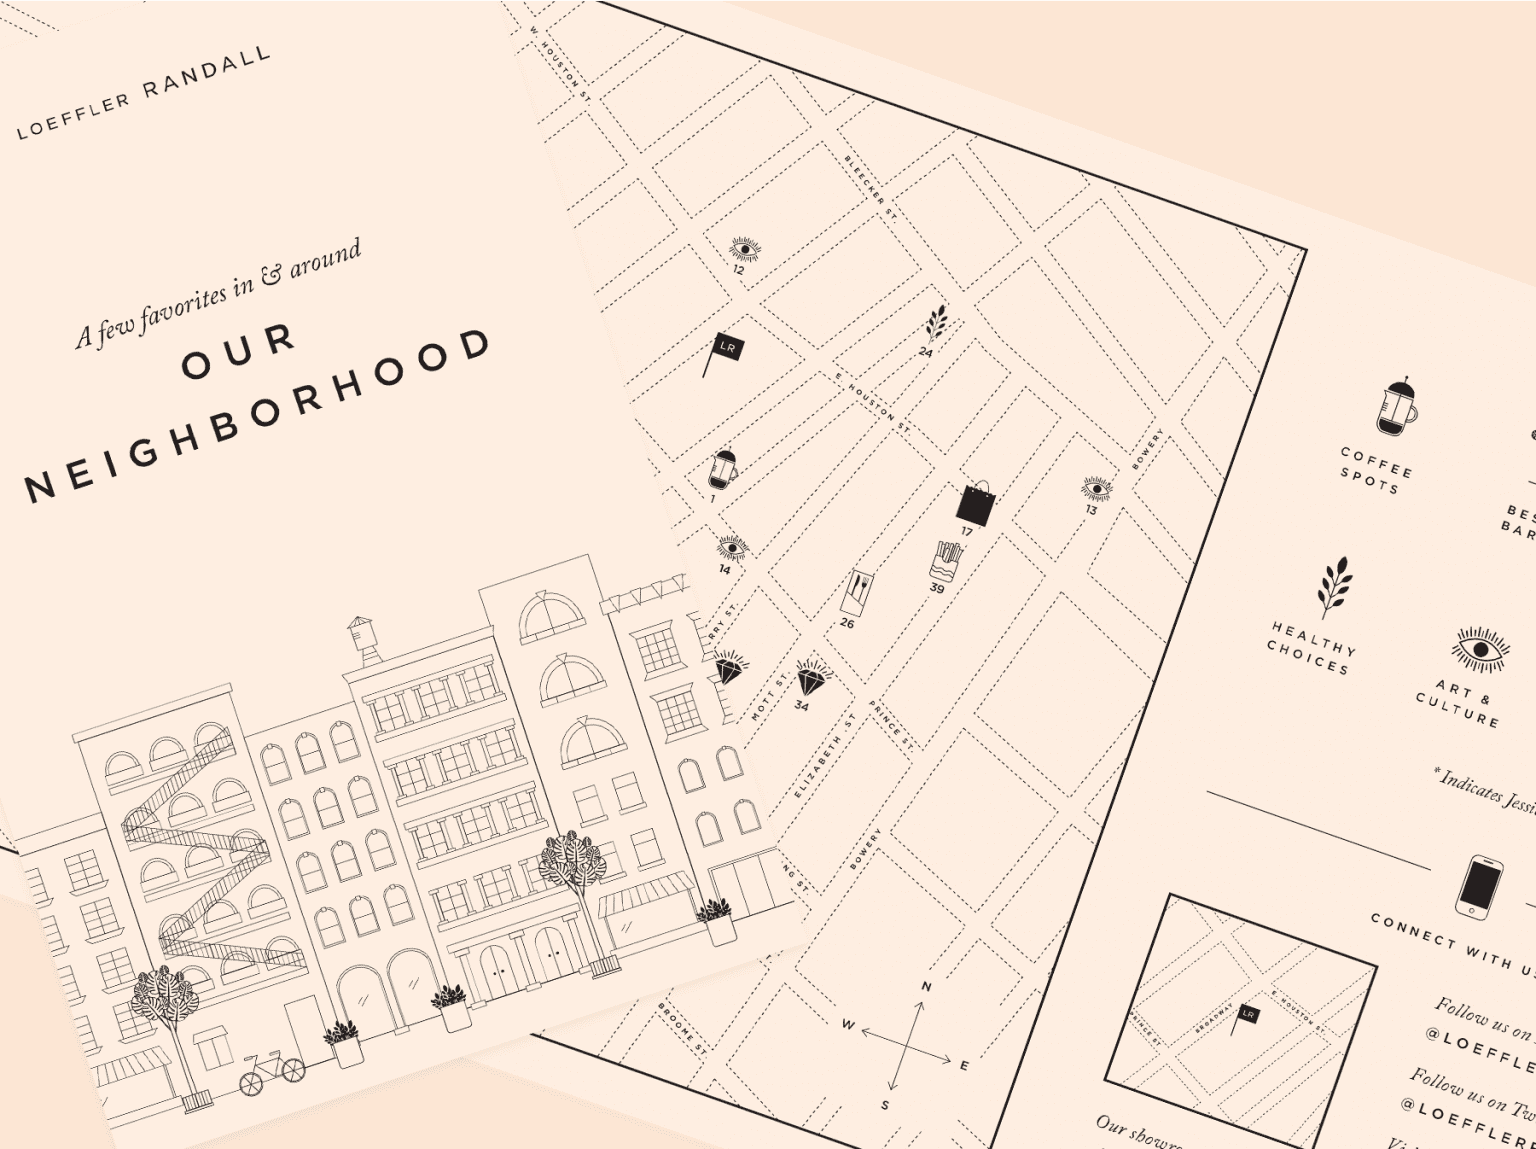 Loeffler Randall Neighborhood Guide